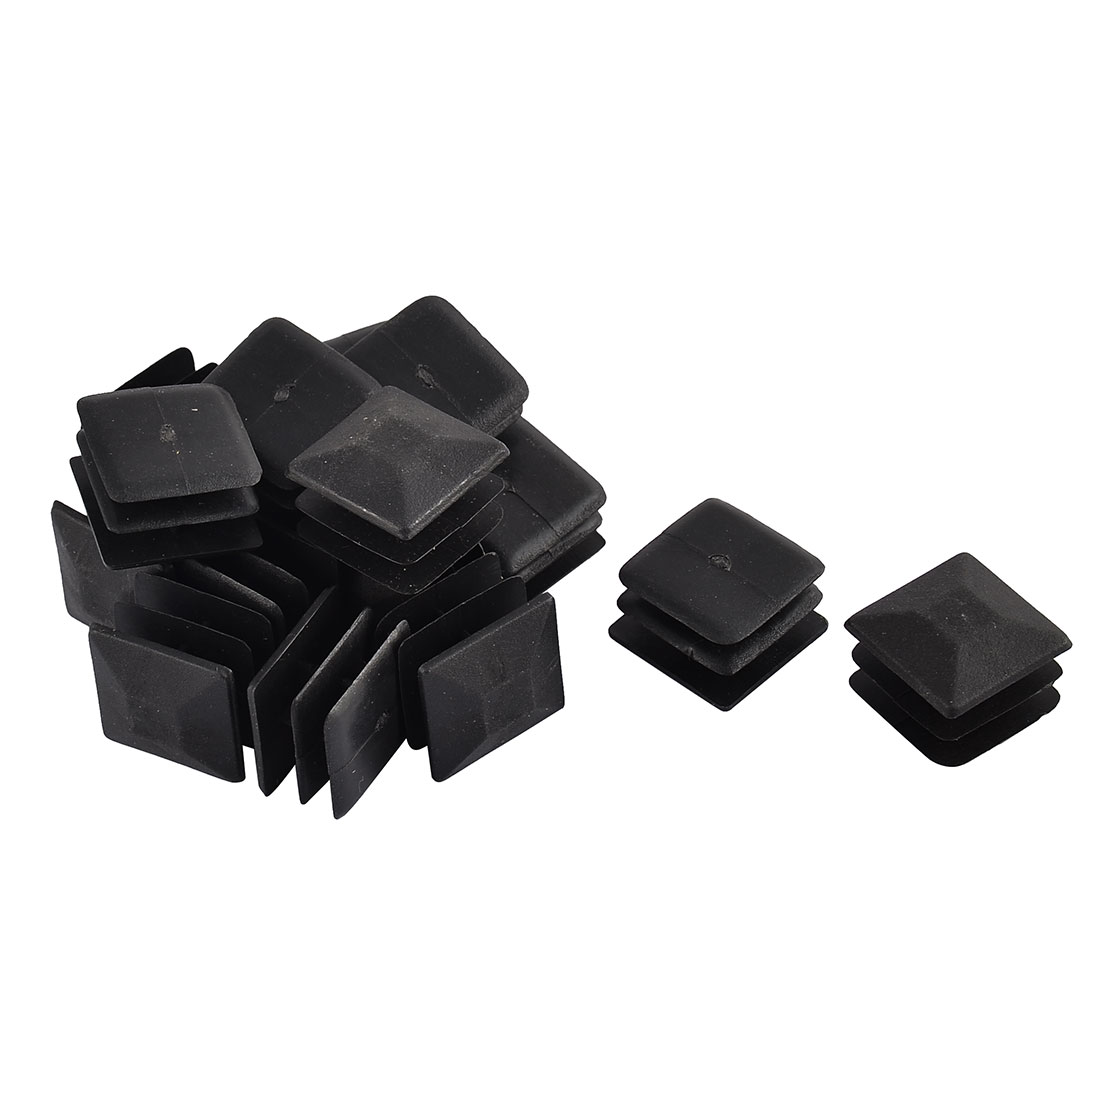 Home Desk Chair Plastic Square Blanking End Cap Tube Insert Black 20x20mm 16pcs